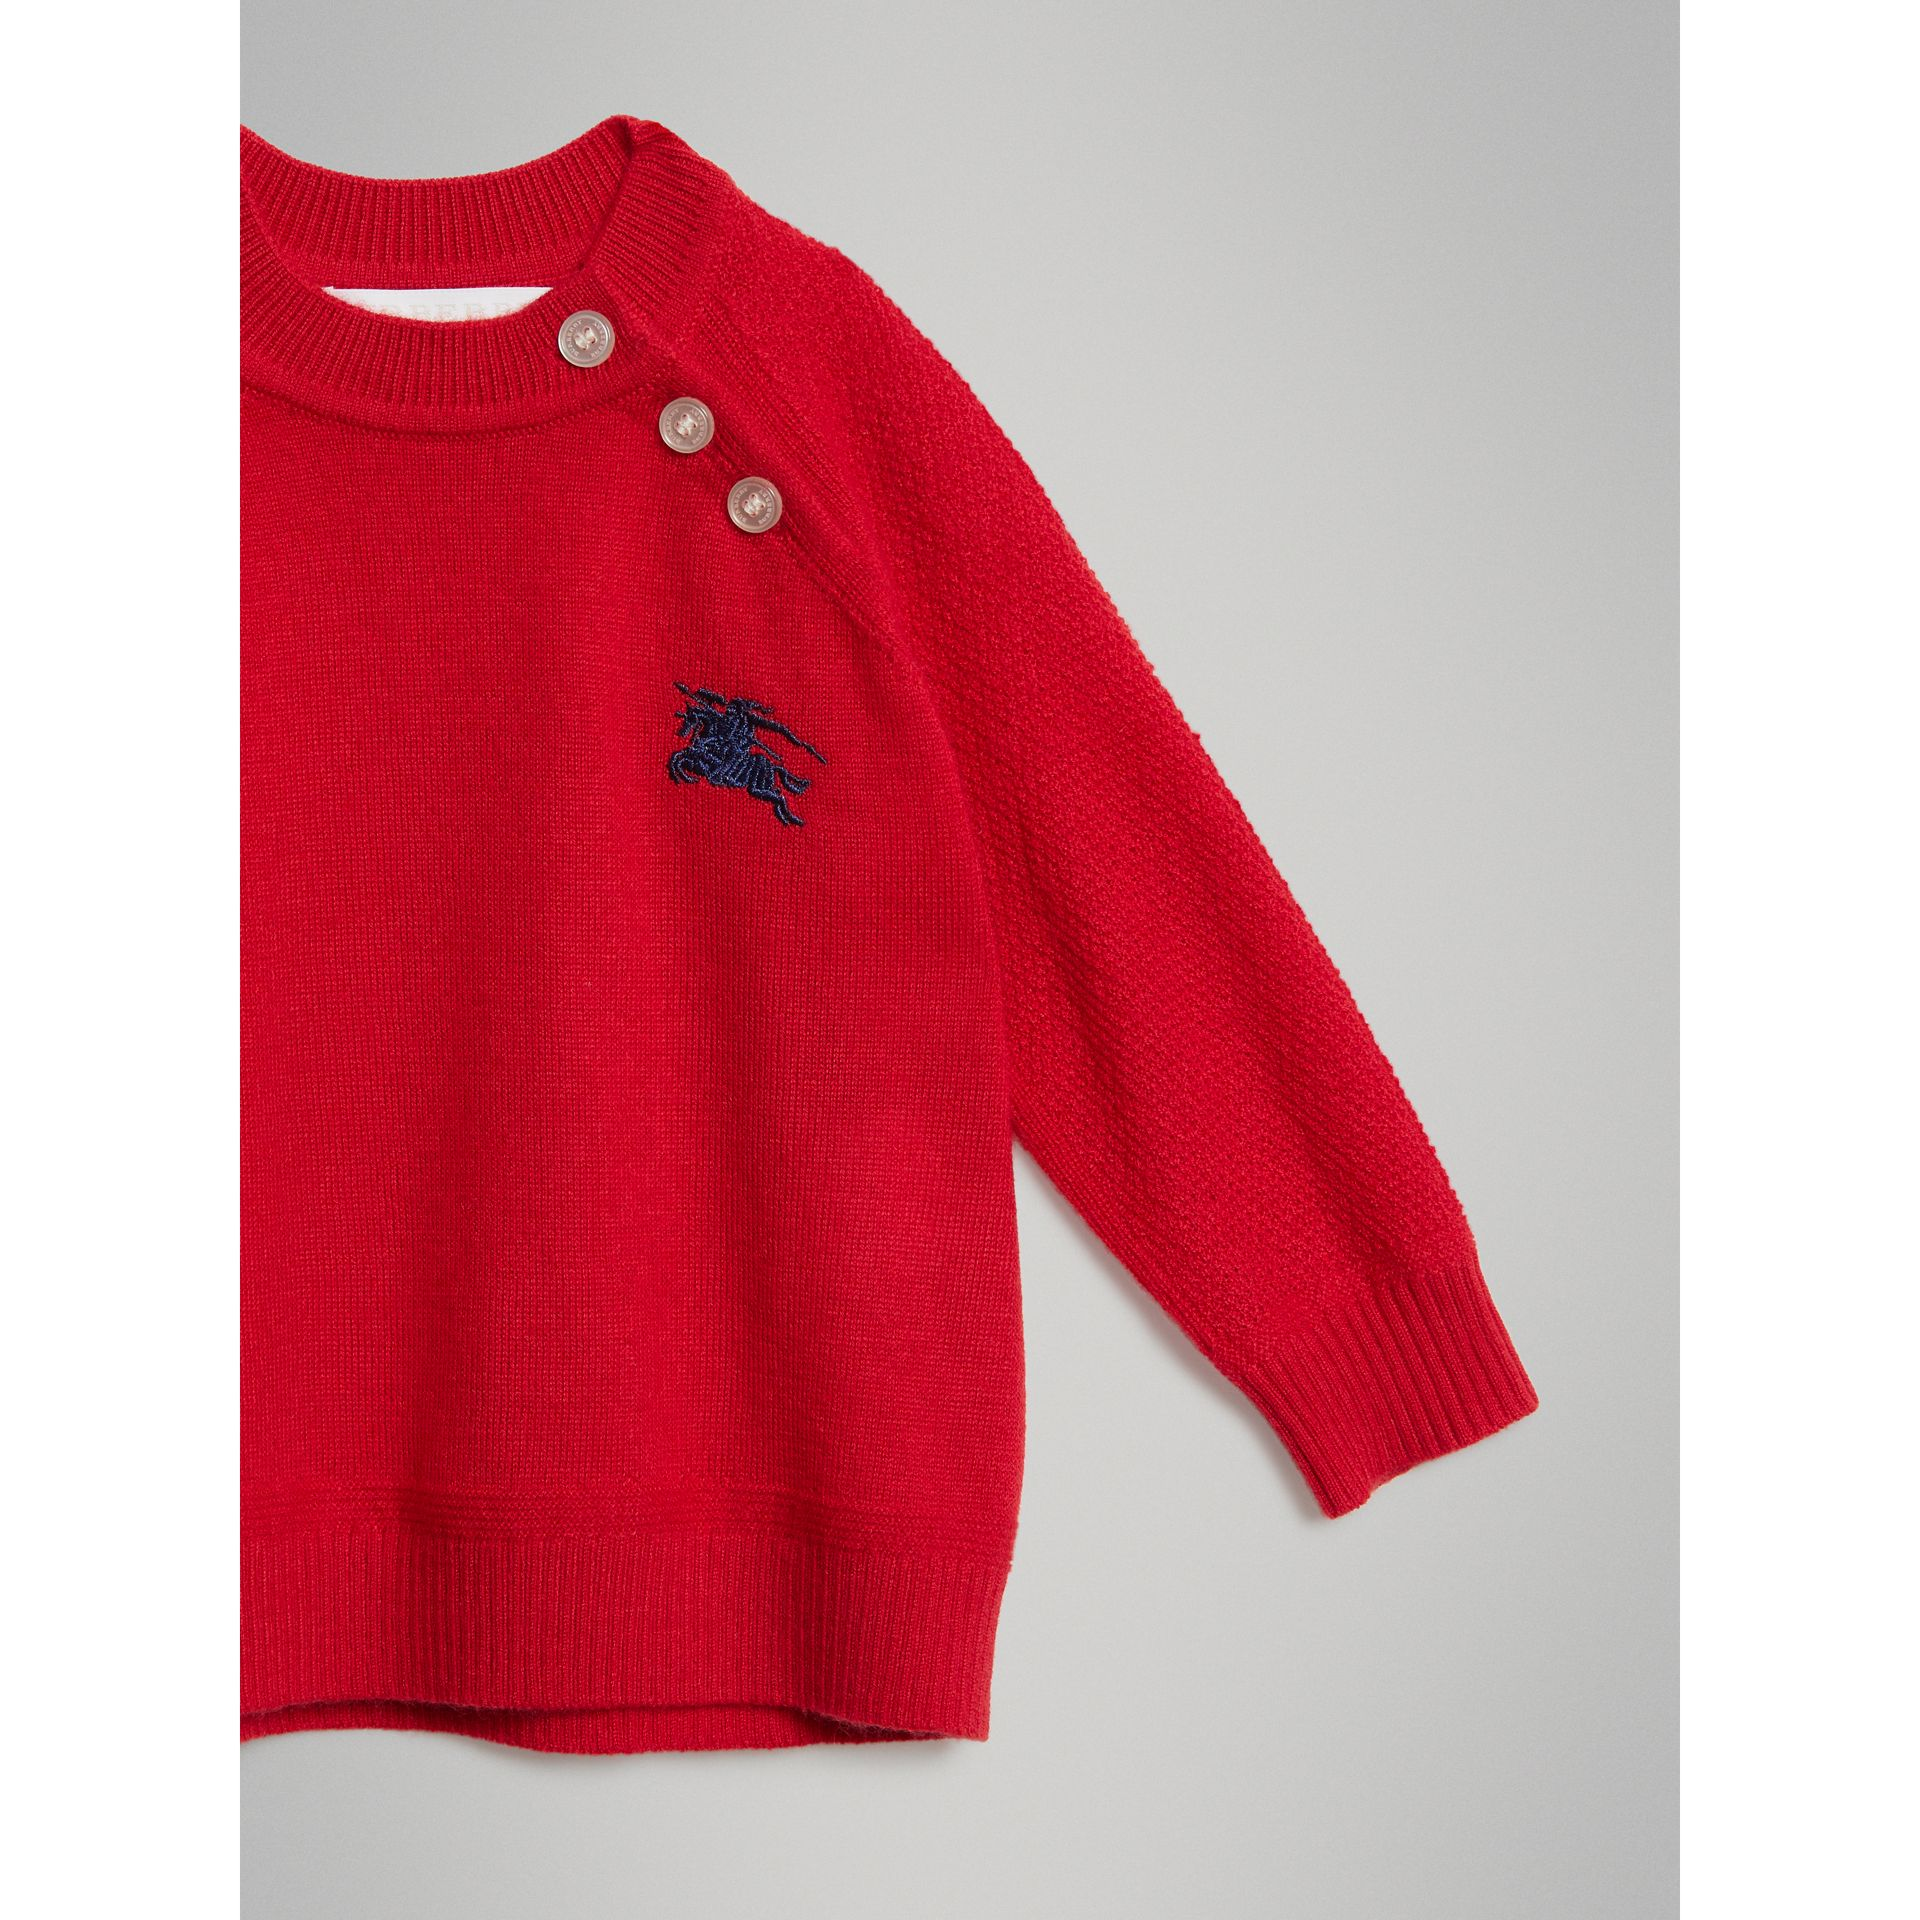 Contrast Motif Cashmere Sweater in Burgundy Red - Children | Burberry United Kingdom - gallery image 4